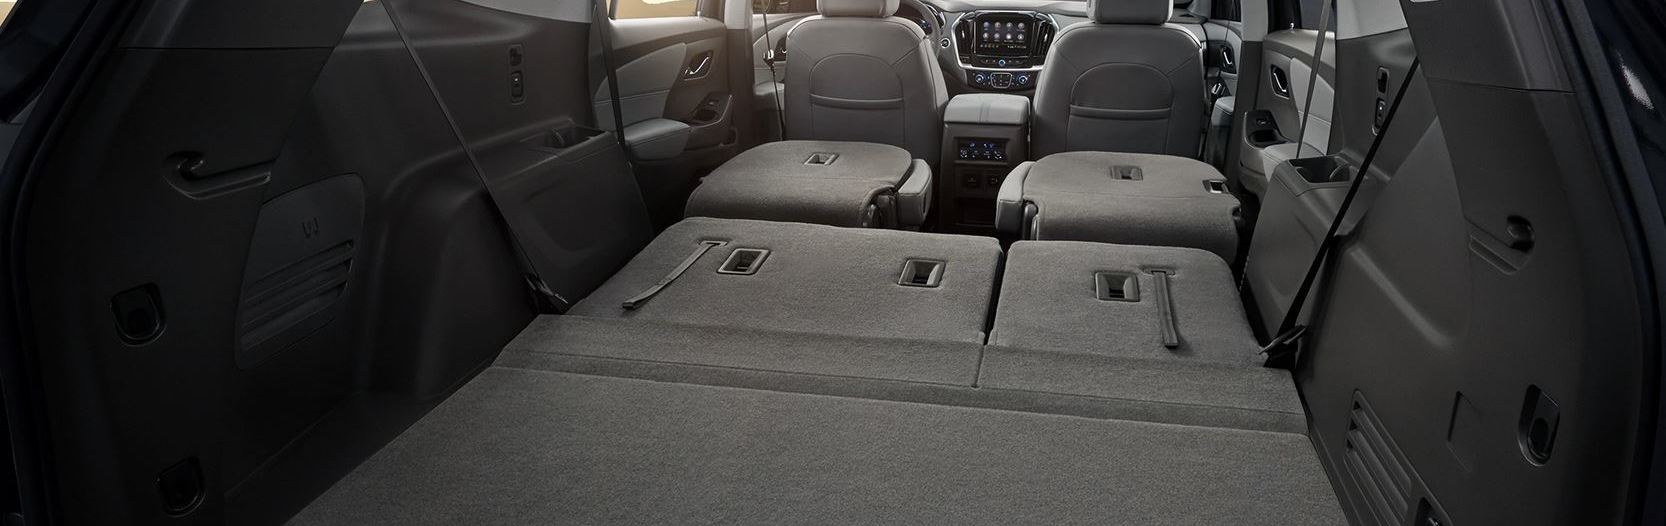 There's Plenty of Space in the 2020 Chevrolet Traverse!